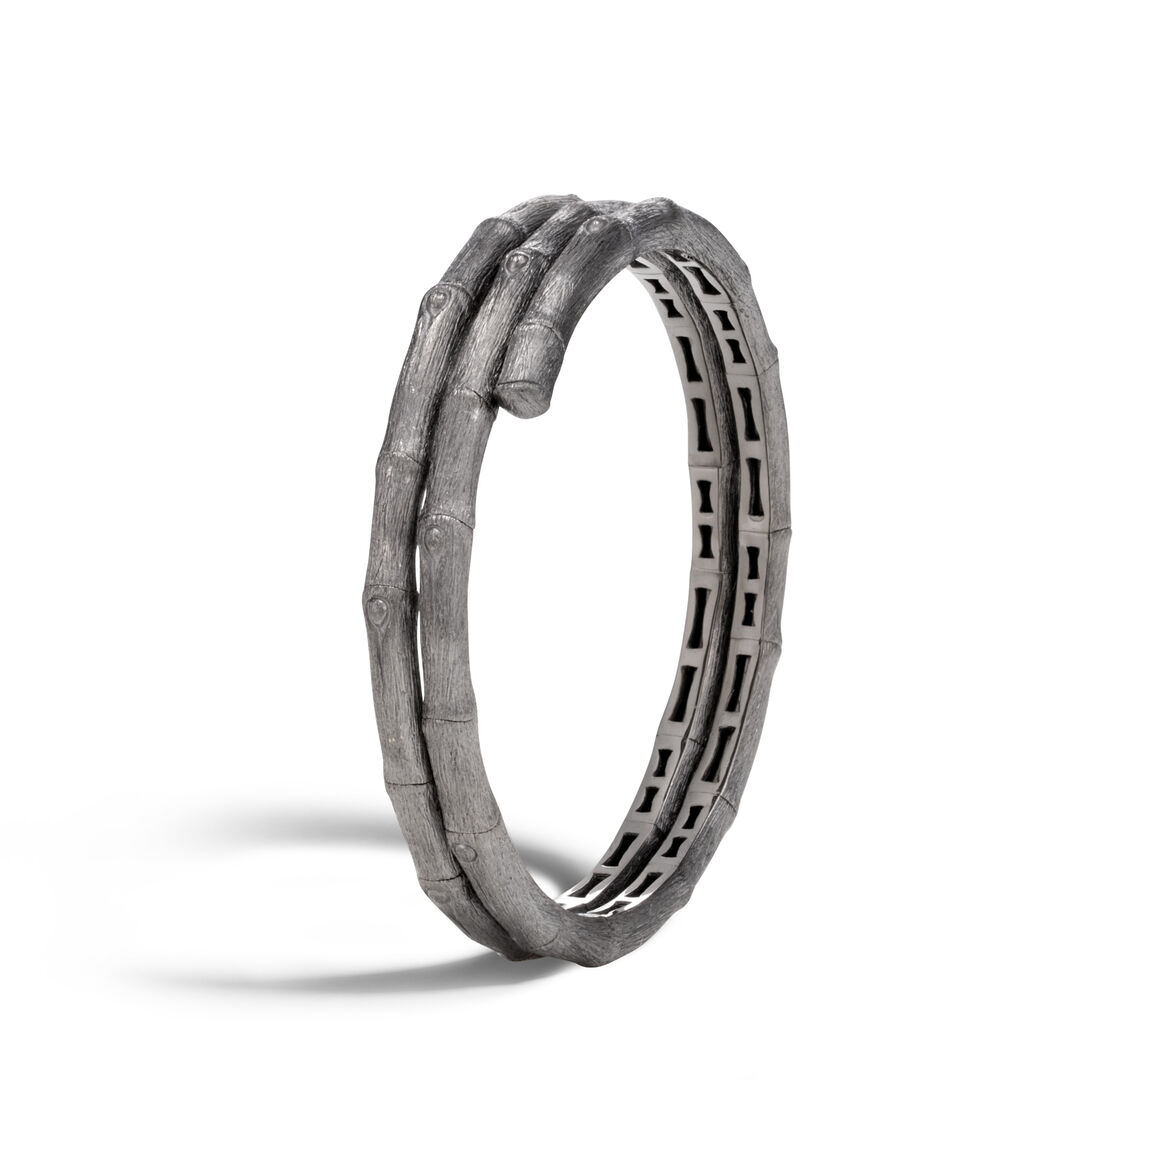 Bamboo Double Coil Bracelet in Blackened Brushed Silver